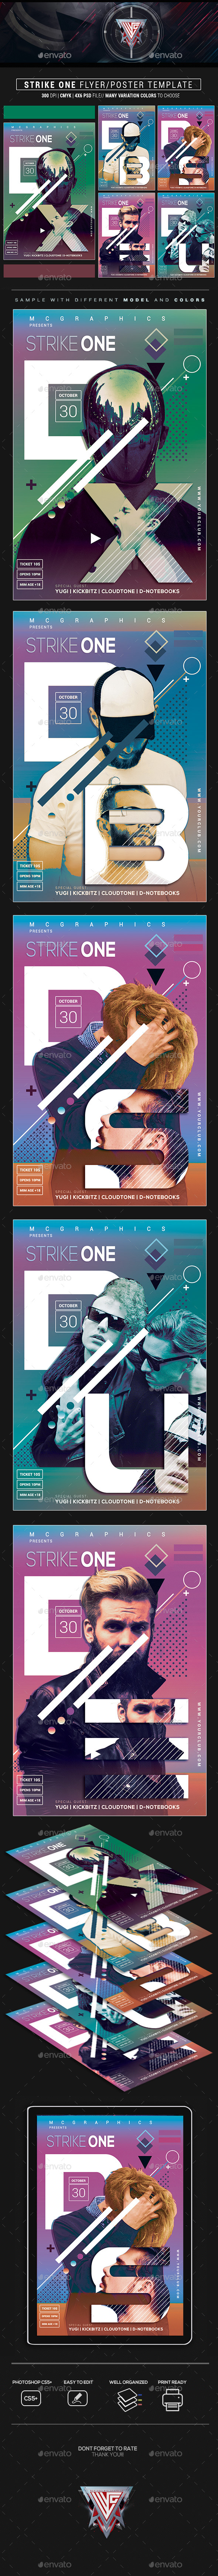 Strike One Flyer/Poster Template - Flyers Print Templates